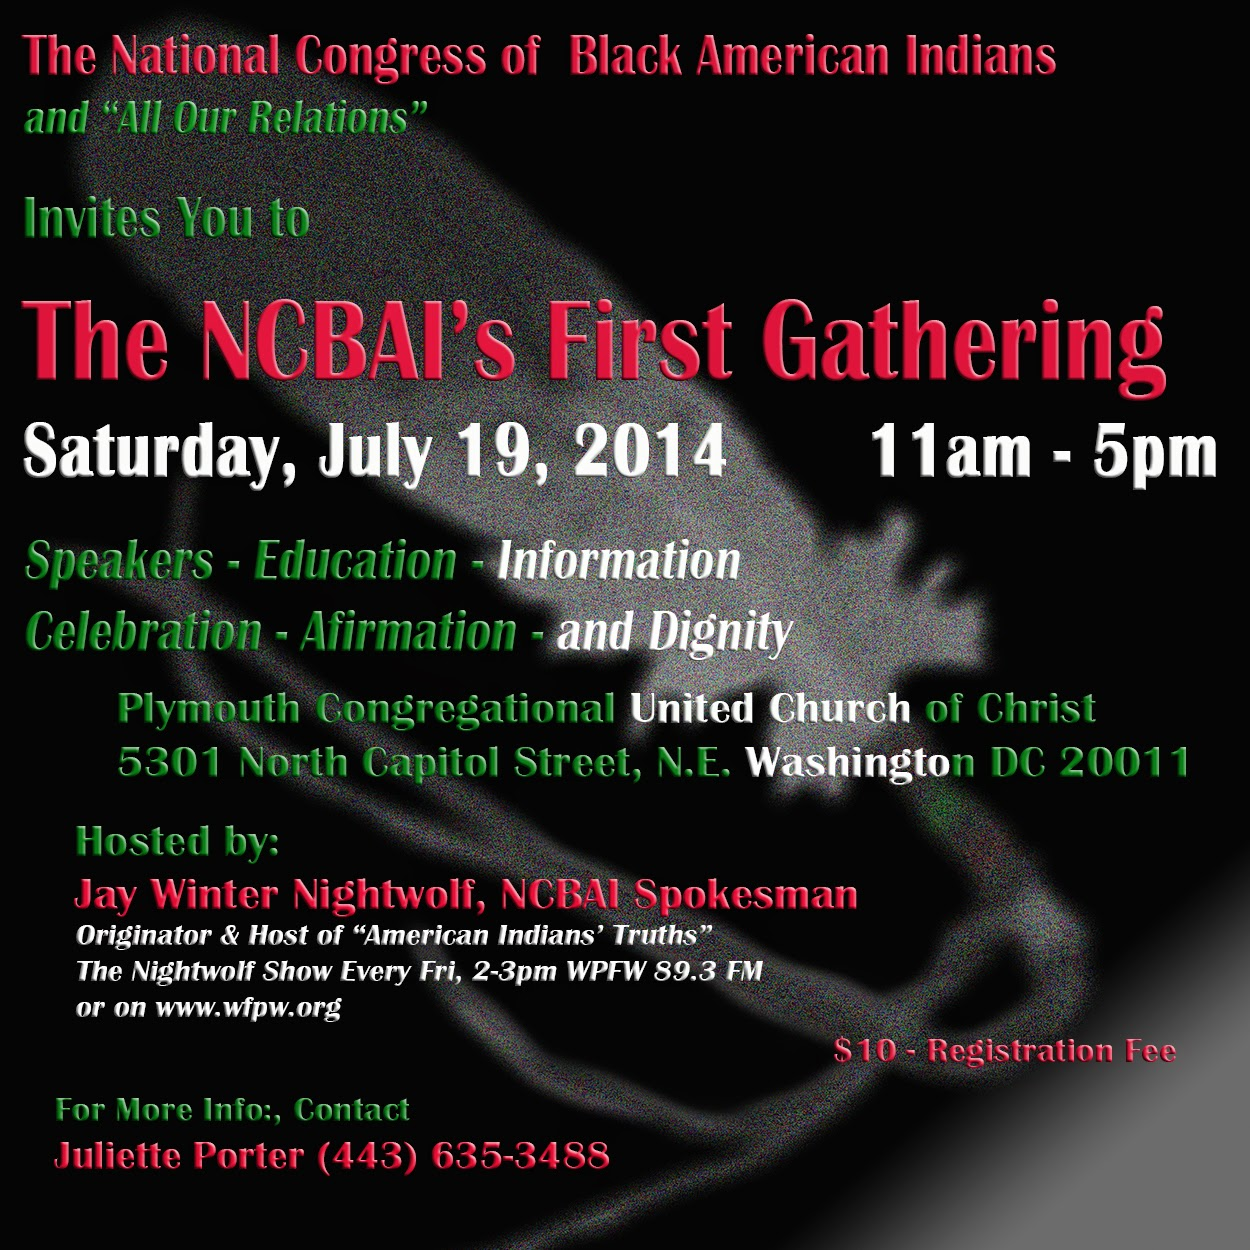 SAVE THE DATE July 19th in Washington DC First Gathering of the National  Congress of Black American IndiansSong Keepers Ltd June 2014Prova Brazil Restaurant Hyannis Ma  Prova Brazil Hyannis  . Al Lighting Al5250. Home Design Ideas